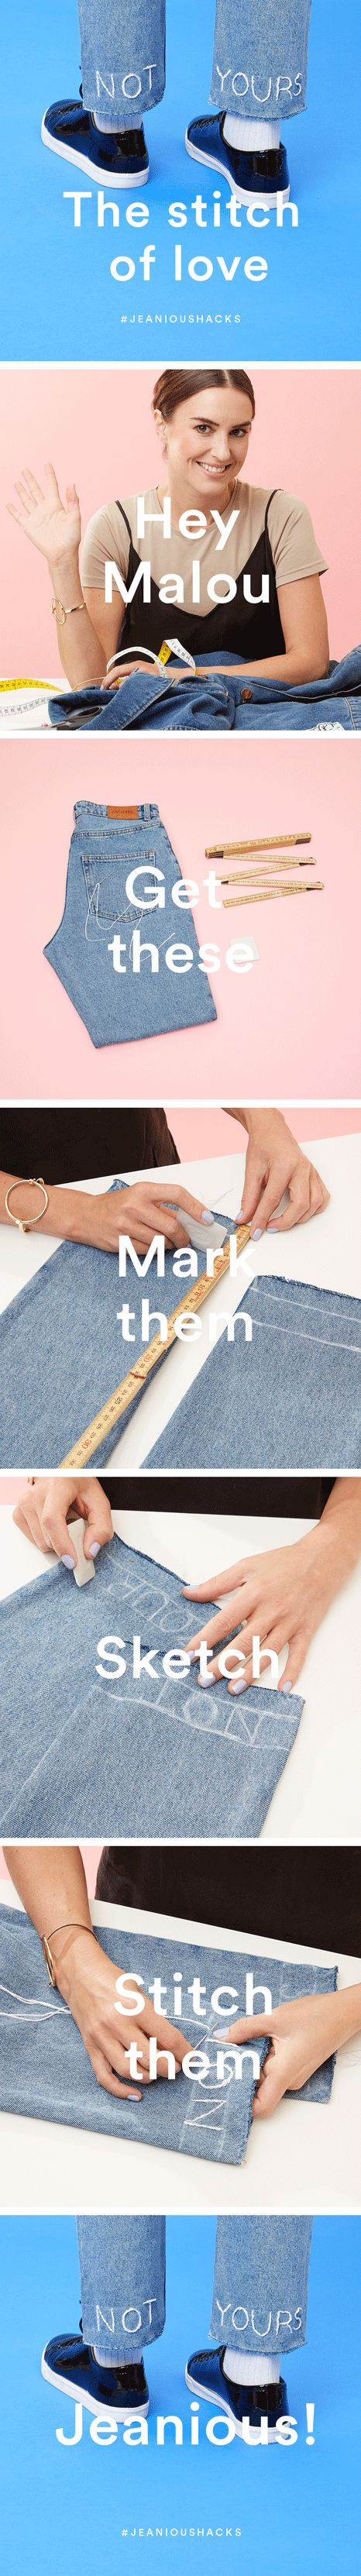 You Will Need: A Ruler Or Tape Measure Chalk Embroidery Cotton Jeans Step 1: